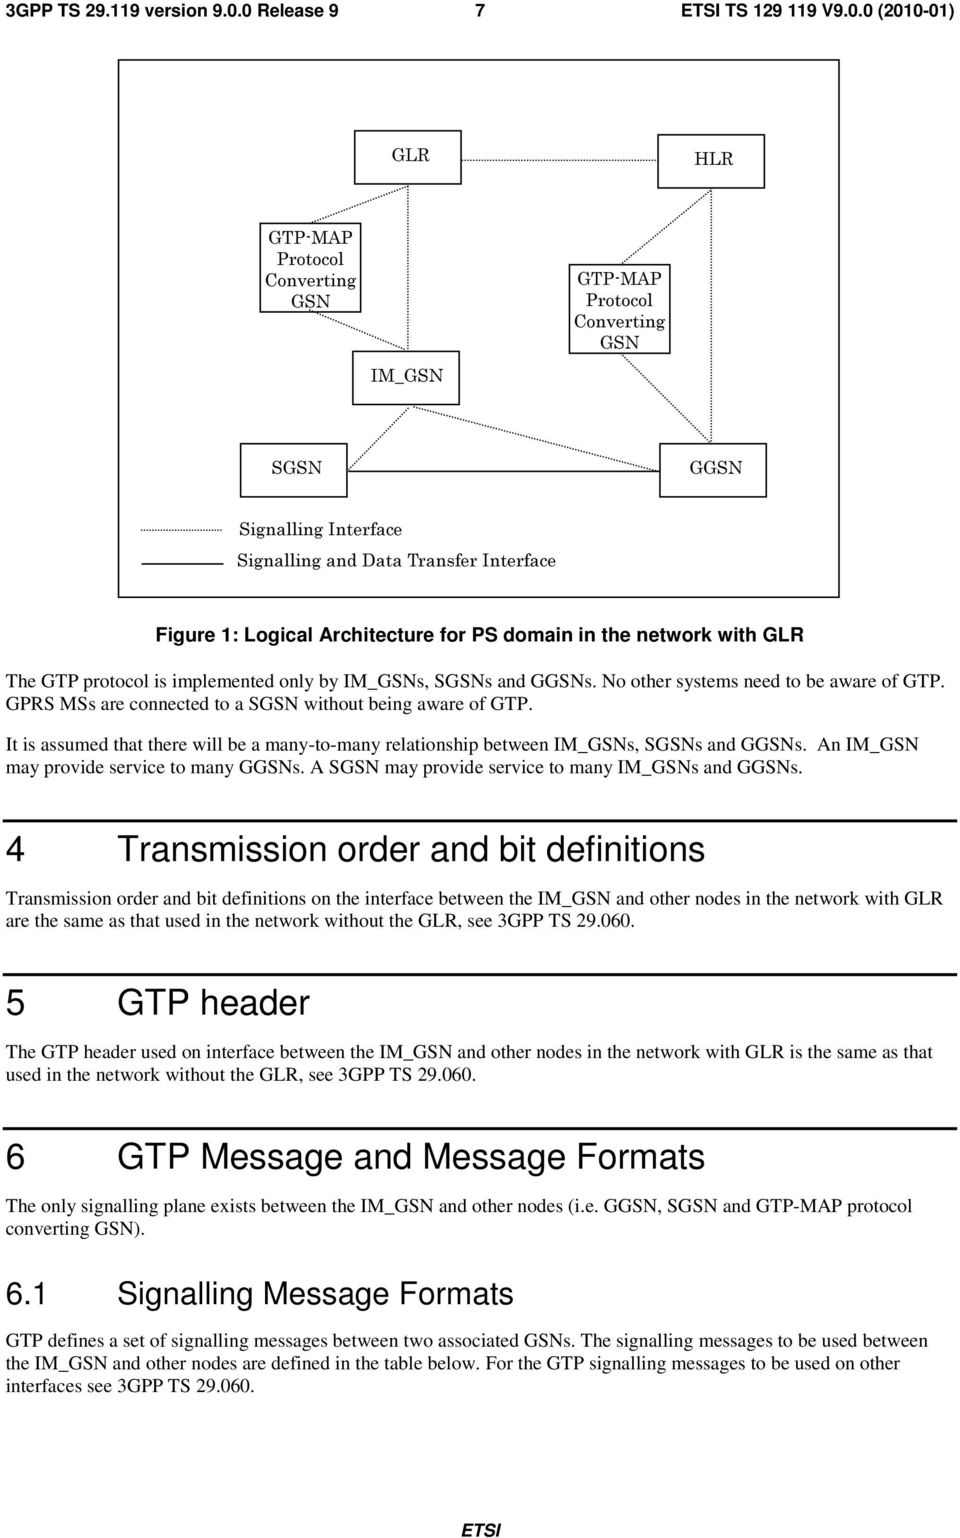 in the network with GLR The GTP protocol is implemented only by s, SGSNs and GGSNs. No other systems need to be aware of GTP. GPRS MSs are connected to a SGSN without being aware of GTP.